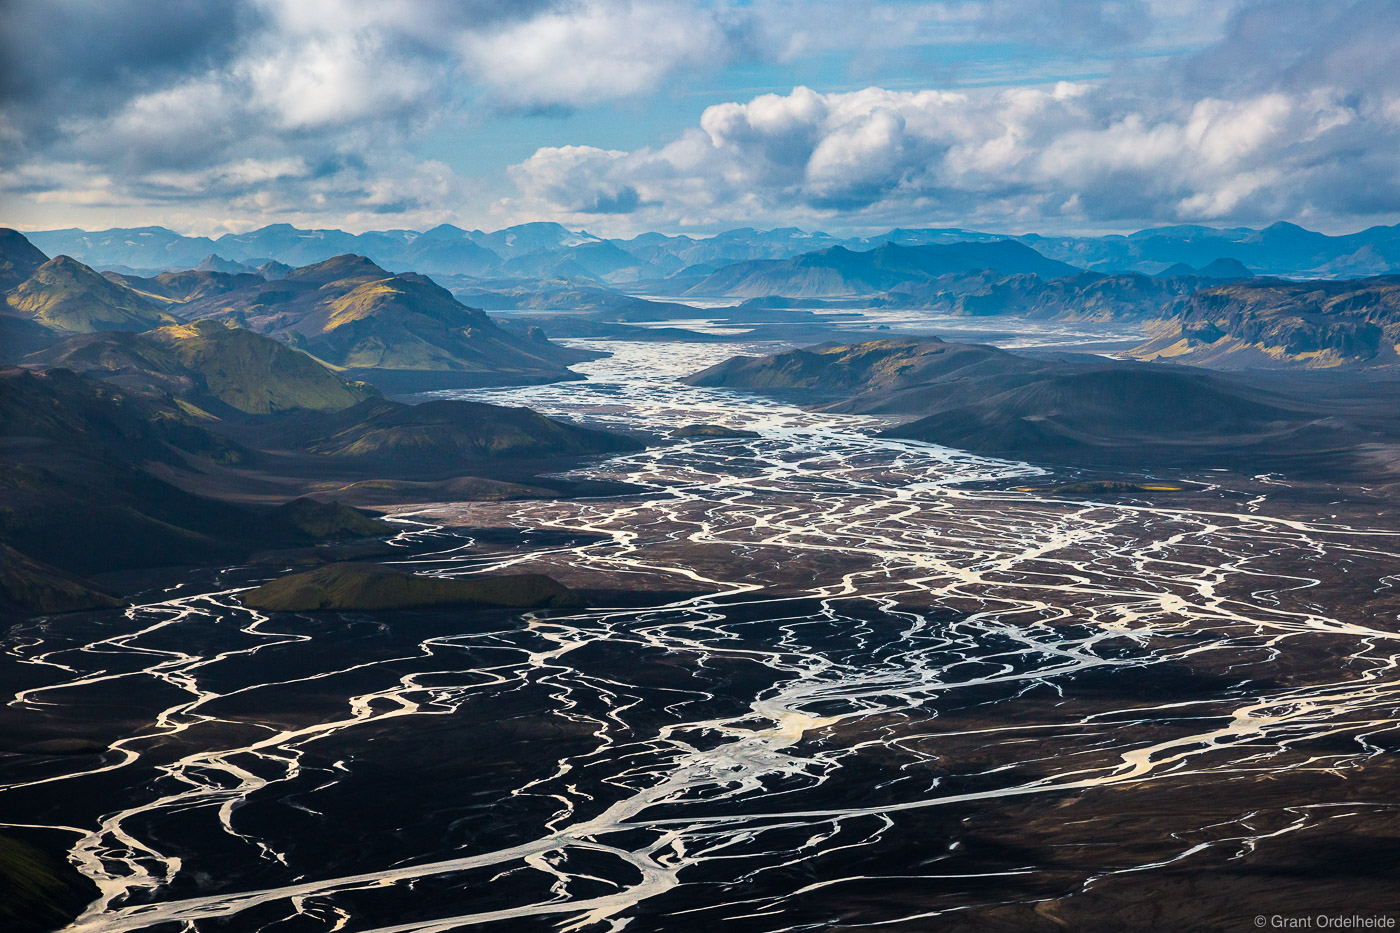 An aerial image of a large sprawling river delta in Iceland